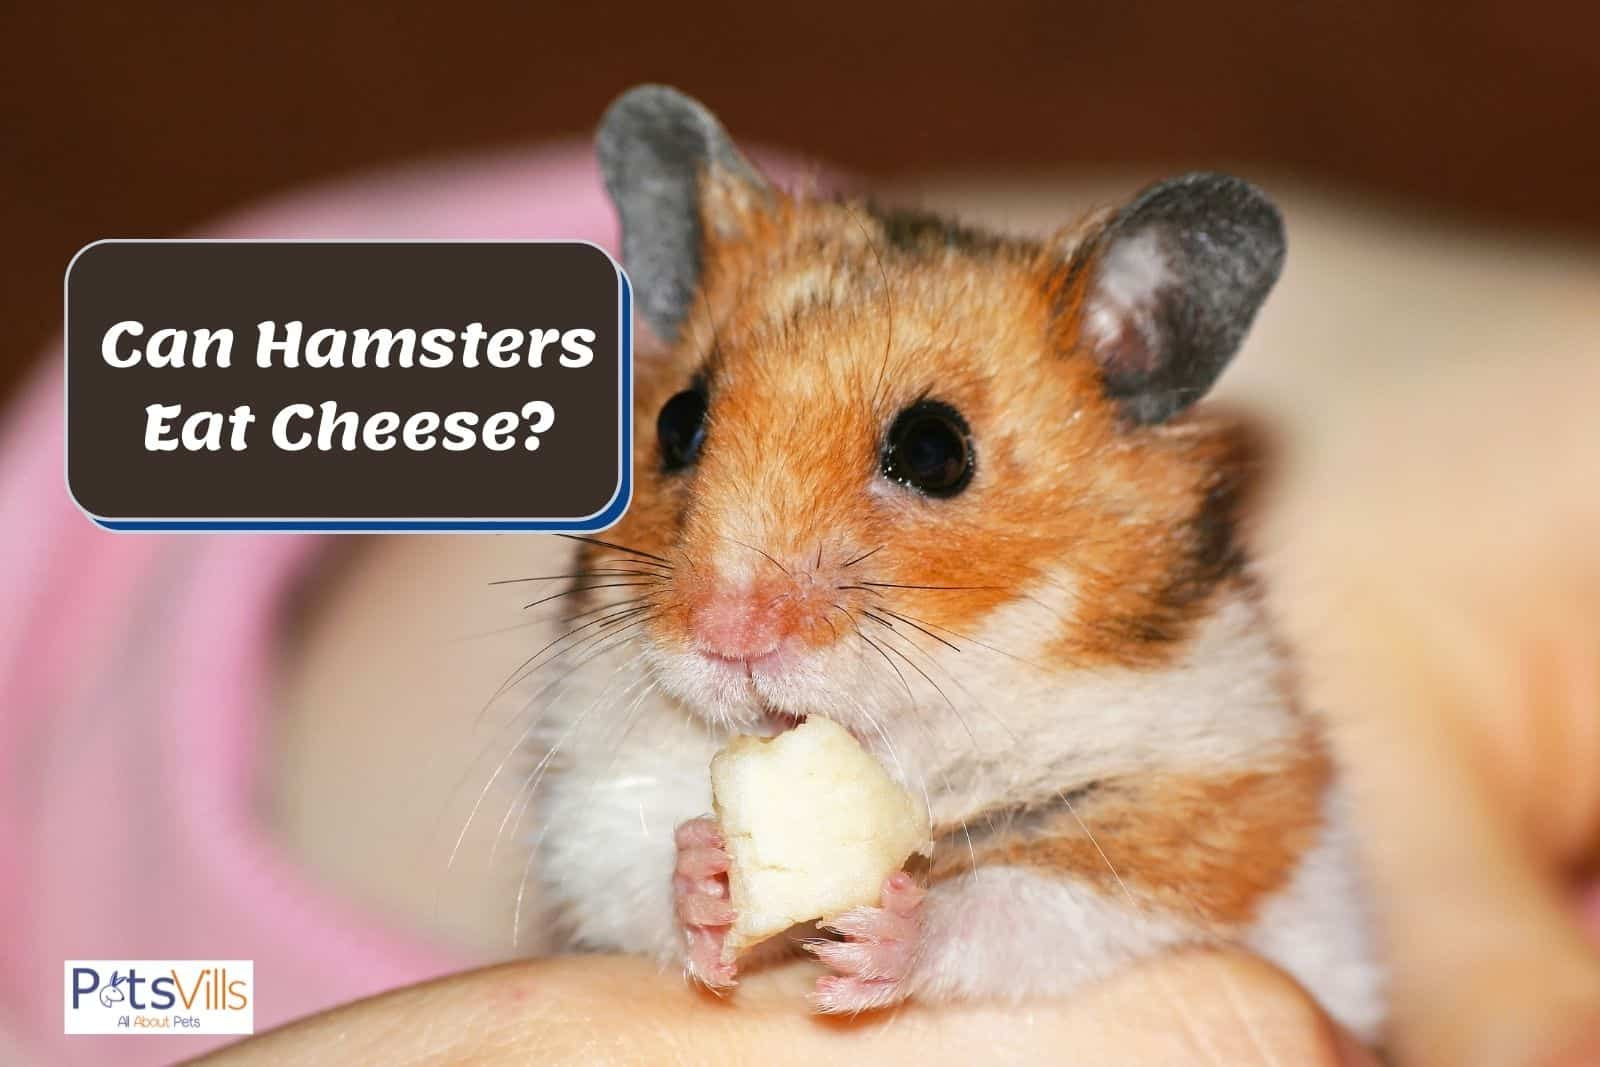 a hamster eating cheese, can hamsters eat cheese